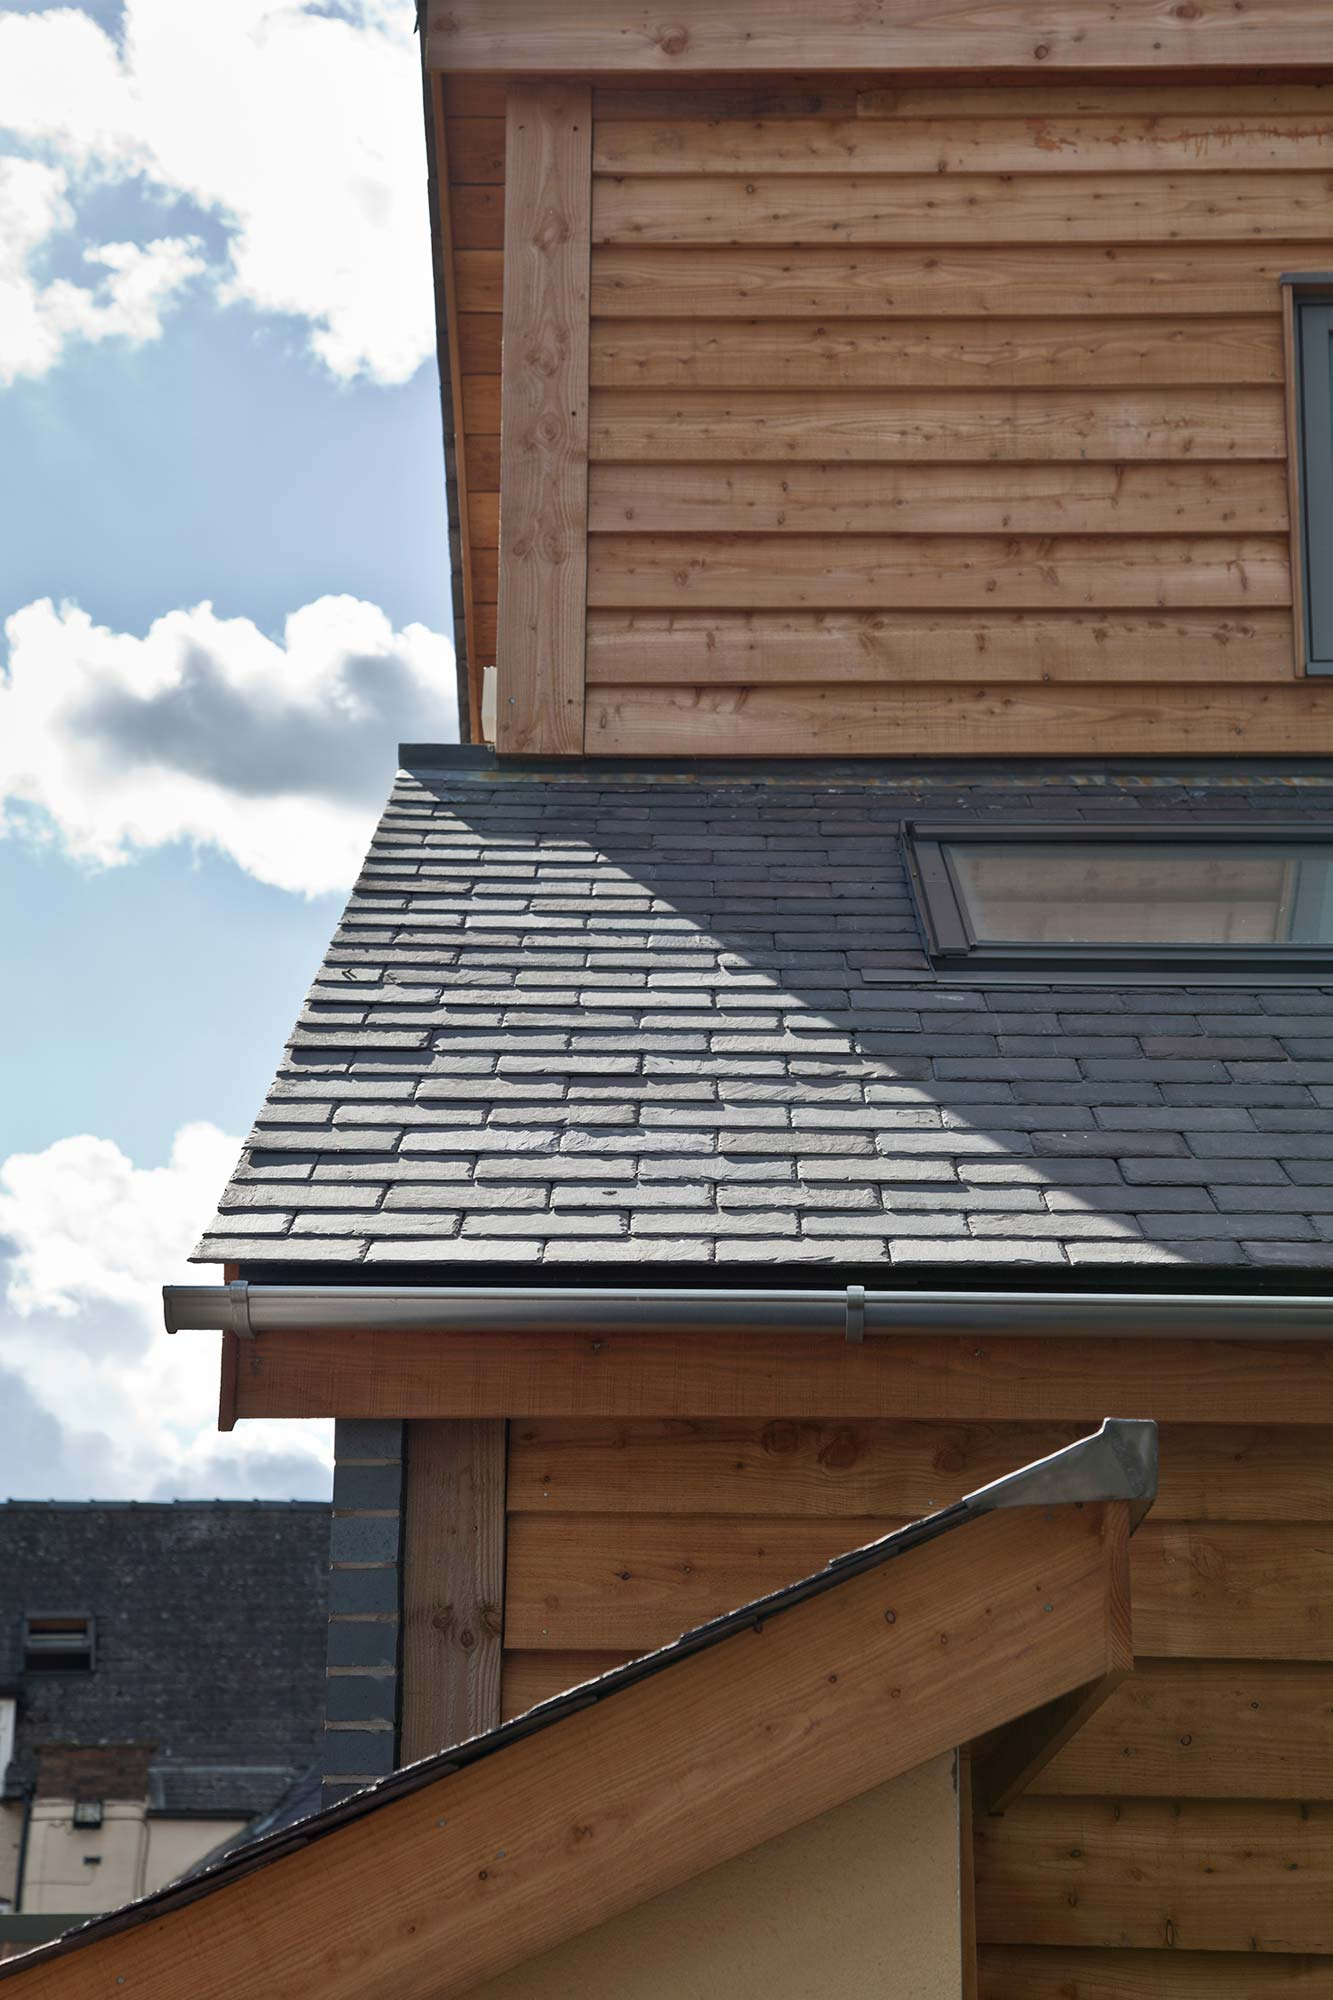 Timber cladding and slate roof